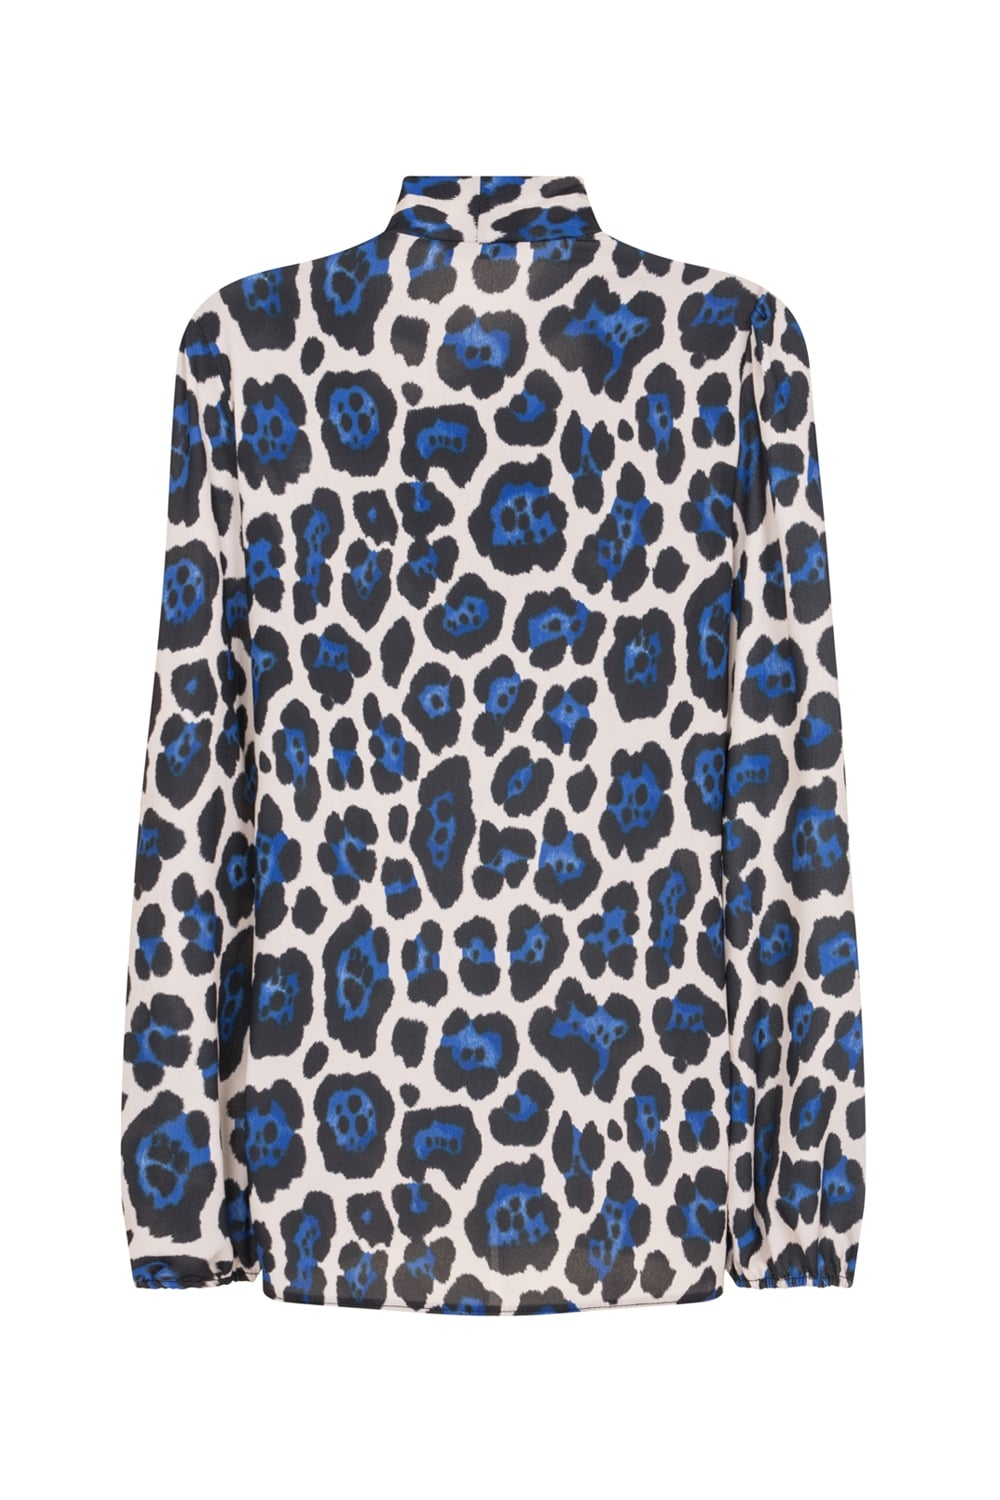 Blue Leopard Print Shirt From Little Mistress Uk